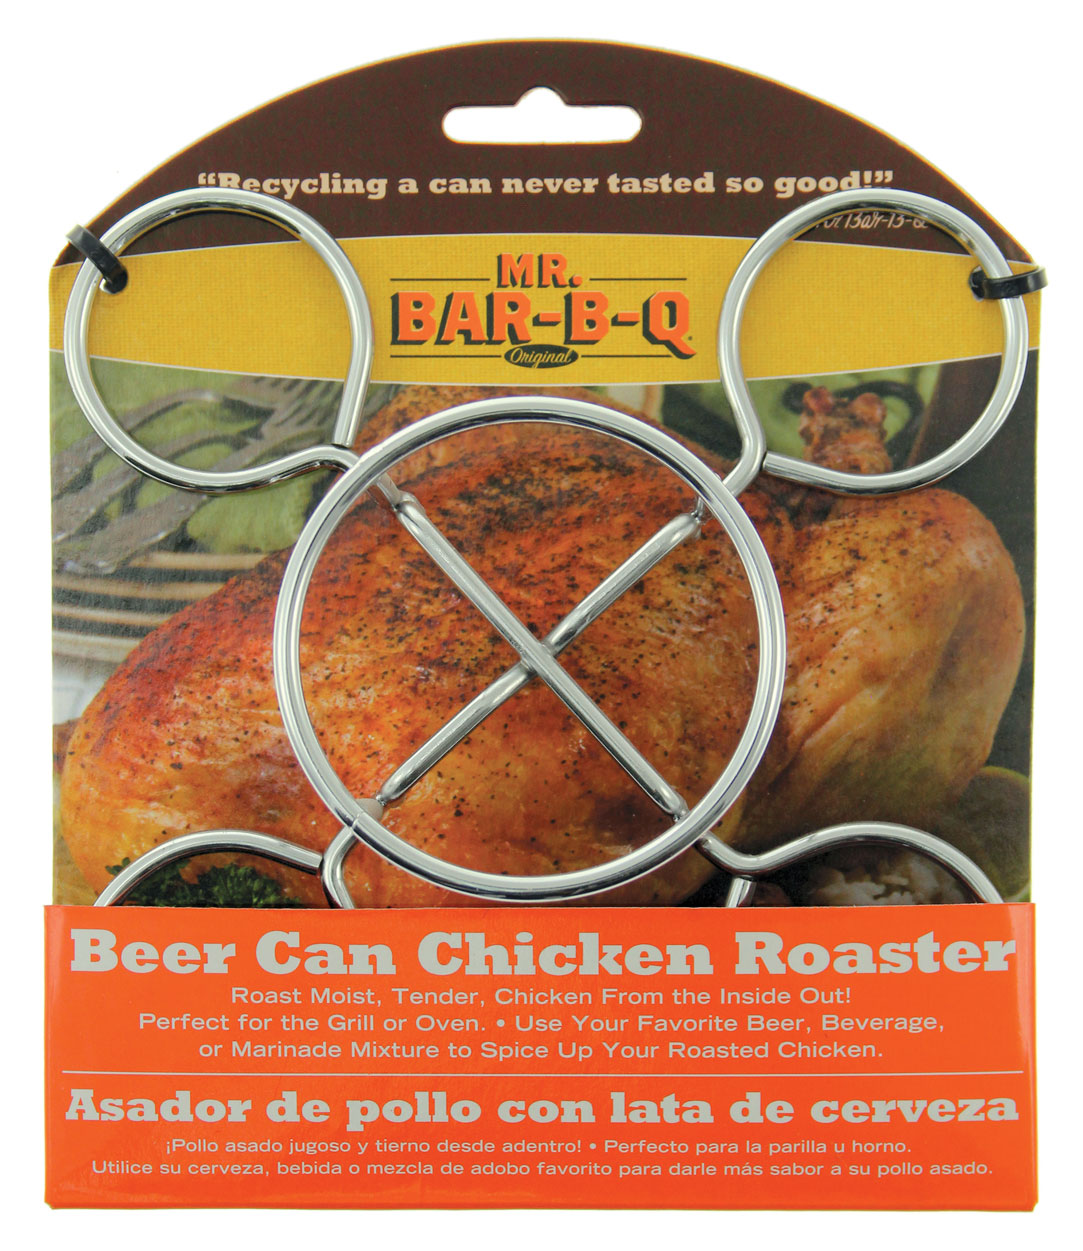 MR B.B.Q. Beer Can Chicken Roaster